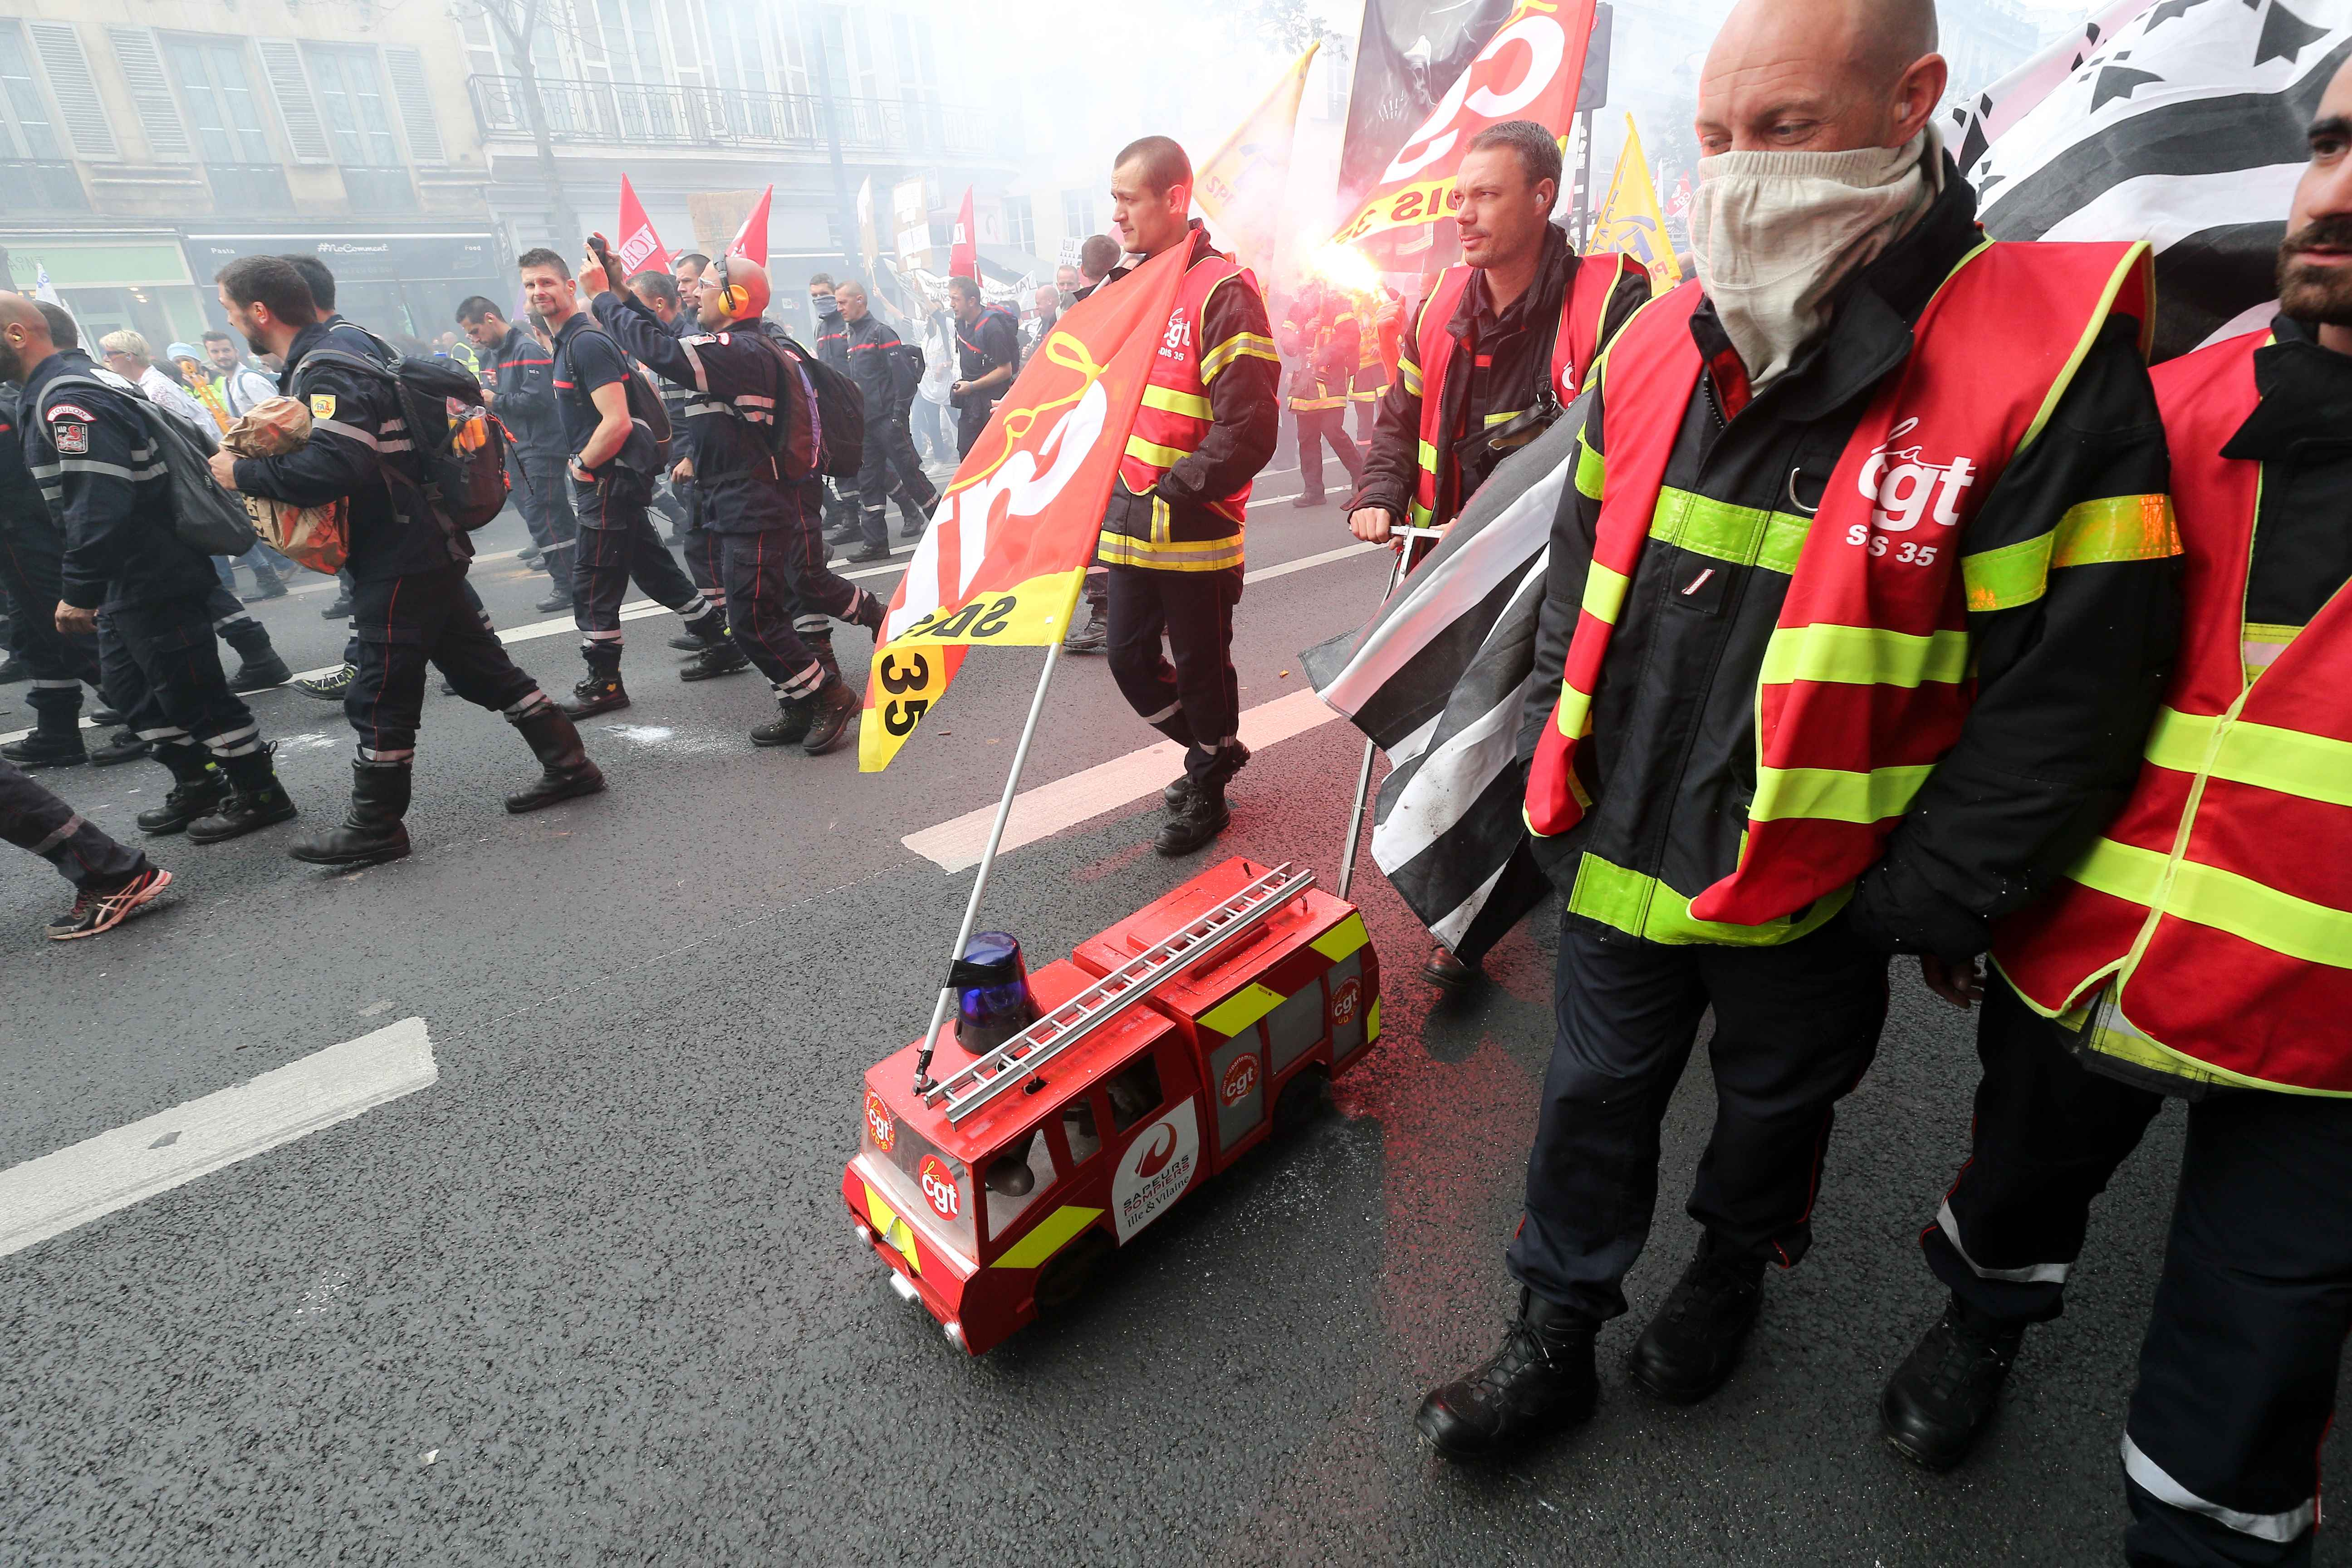 A firefighter push a firefighter vehicle toy during the day of mobilization and national demonstration of the professional French firefighters in Paris, on October 15, 2019.